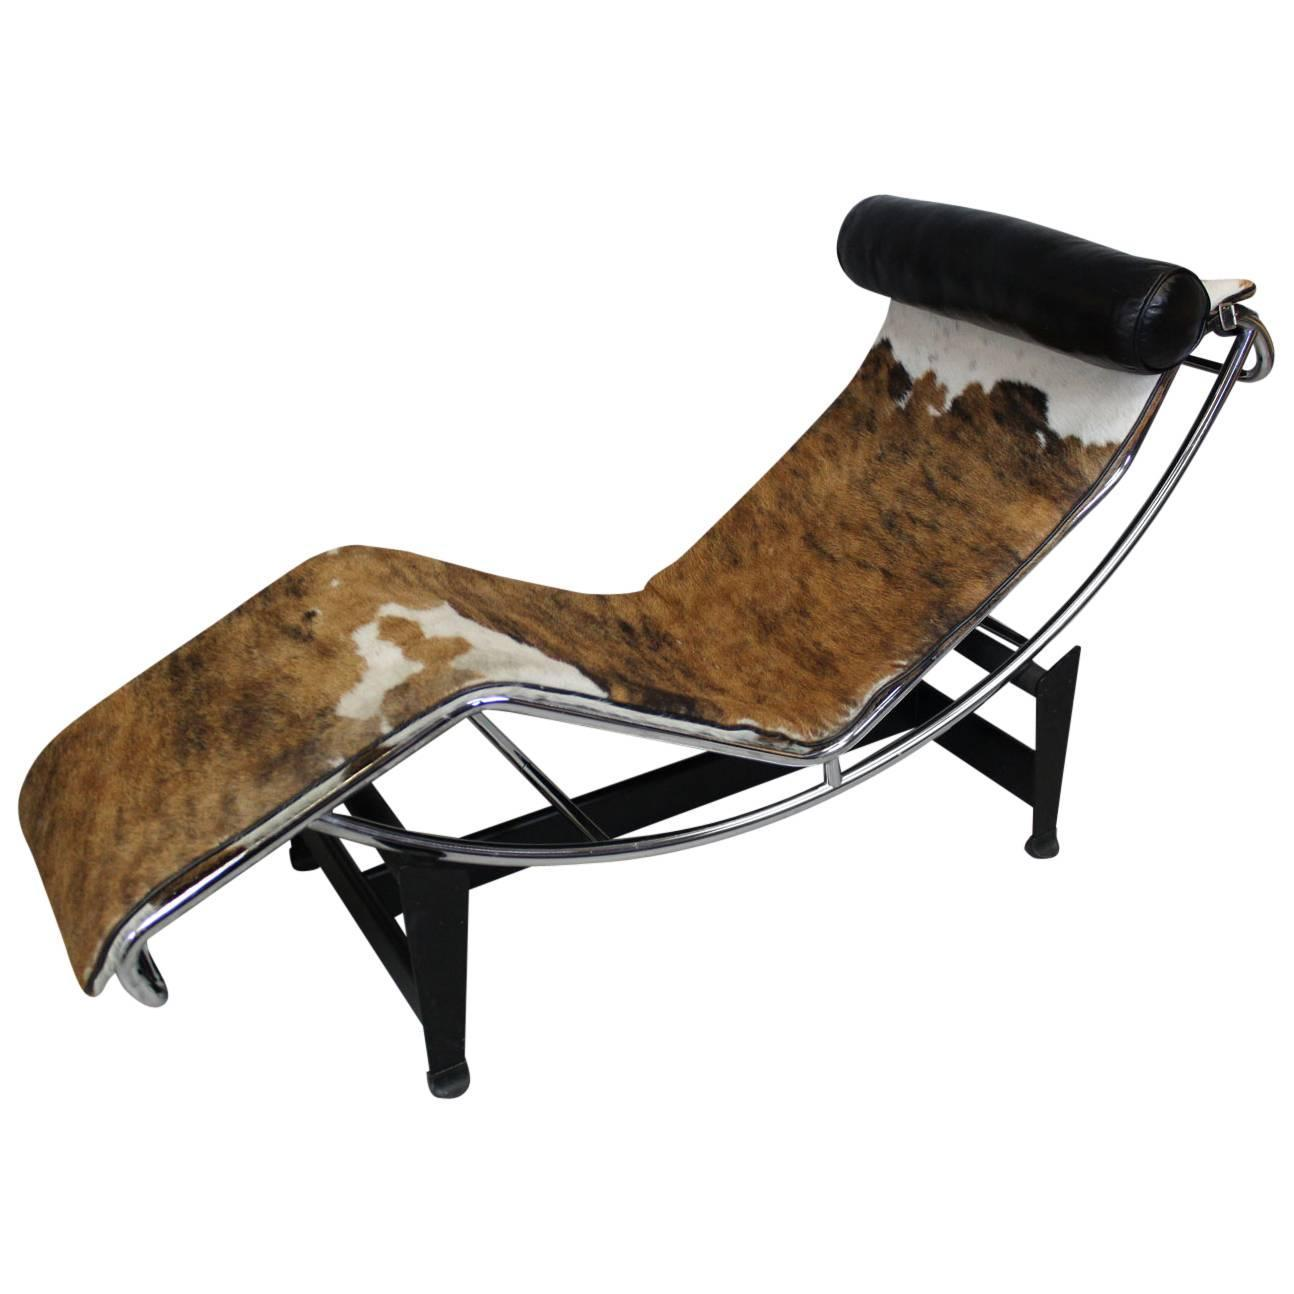 Le corbusier lc4 chaise lounge manufactured by cassina at for Chaise le corbusier lc4